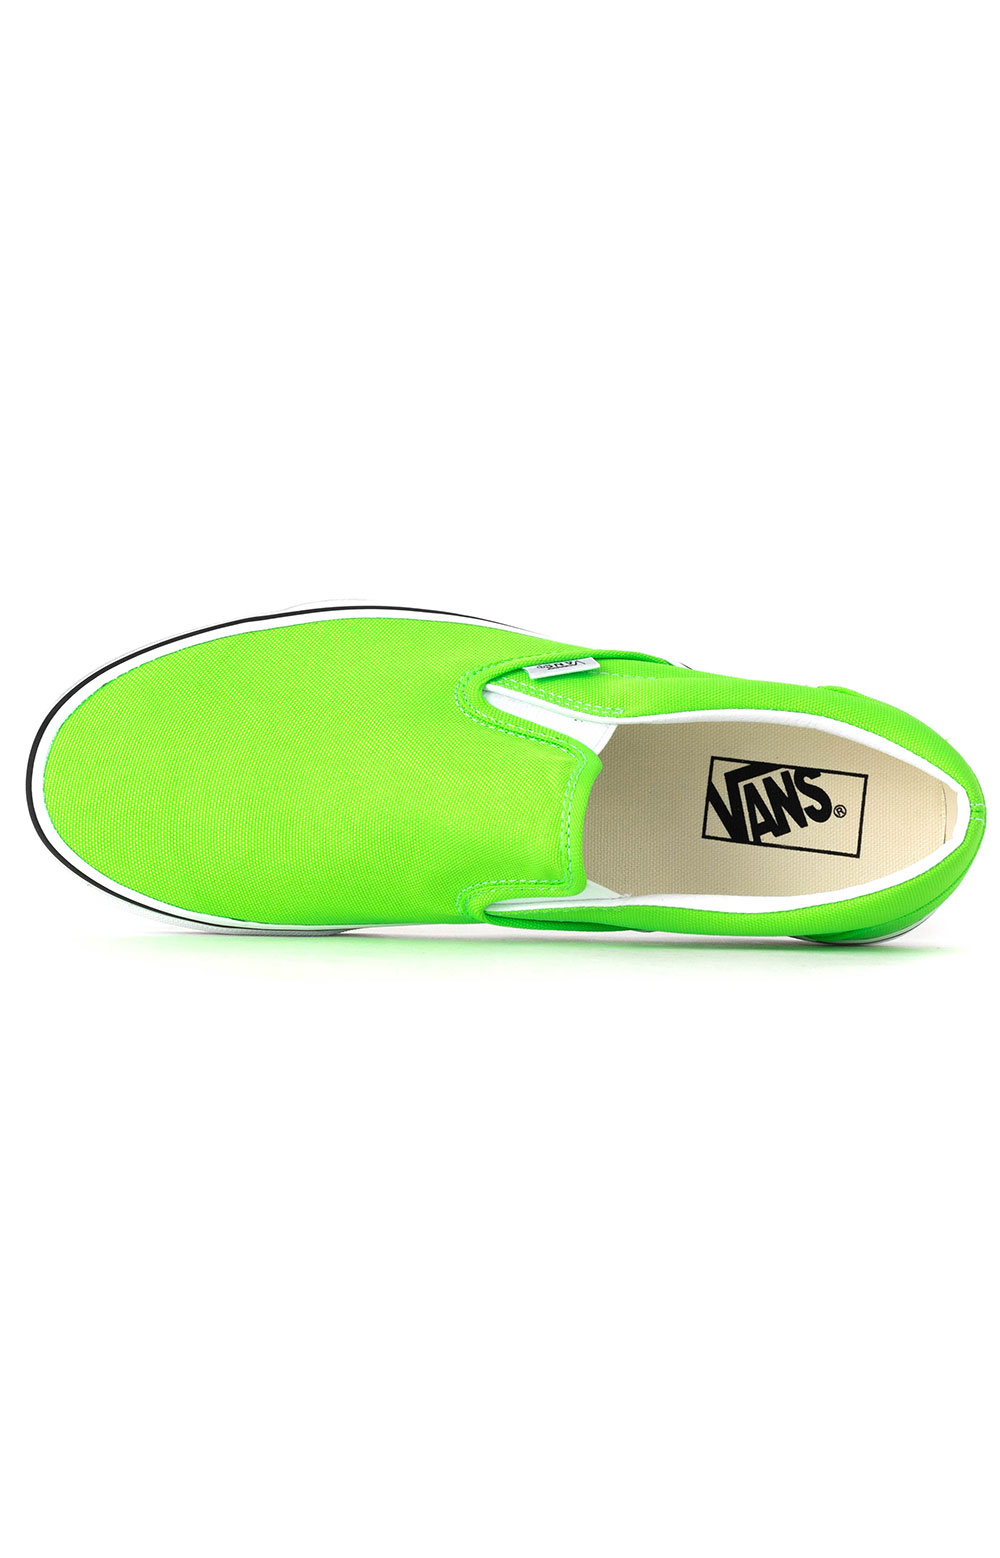 (U38WT5) Neon Classic Slip-On Shoes - Green Gecko 2